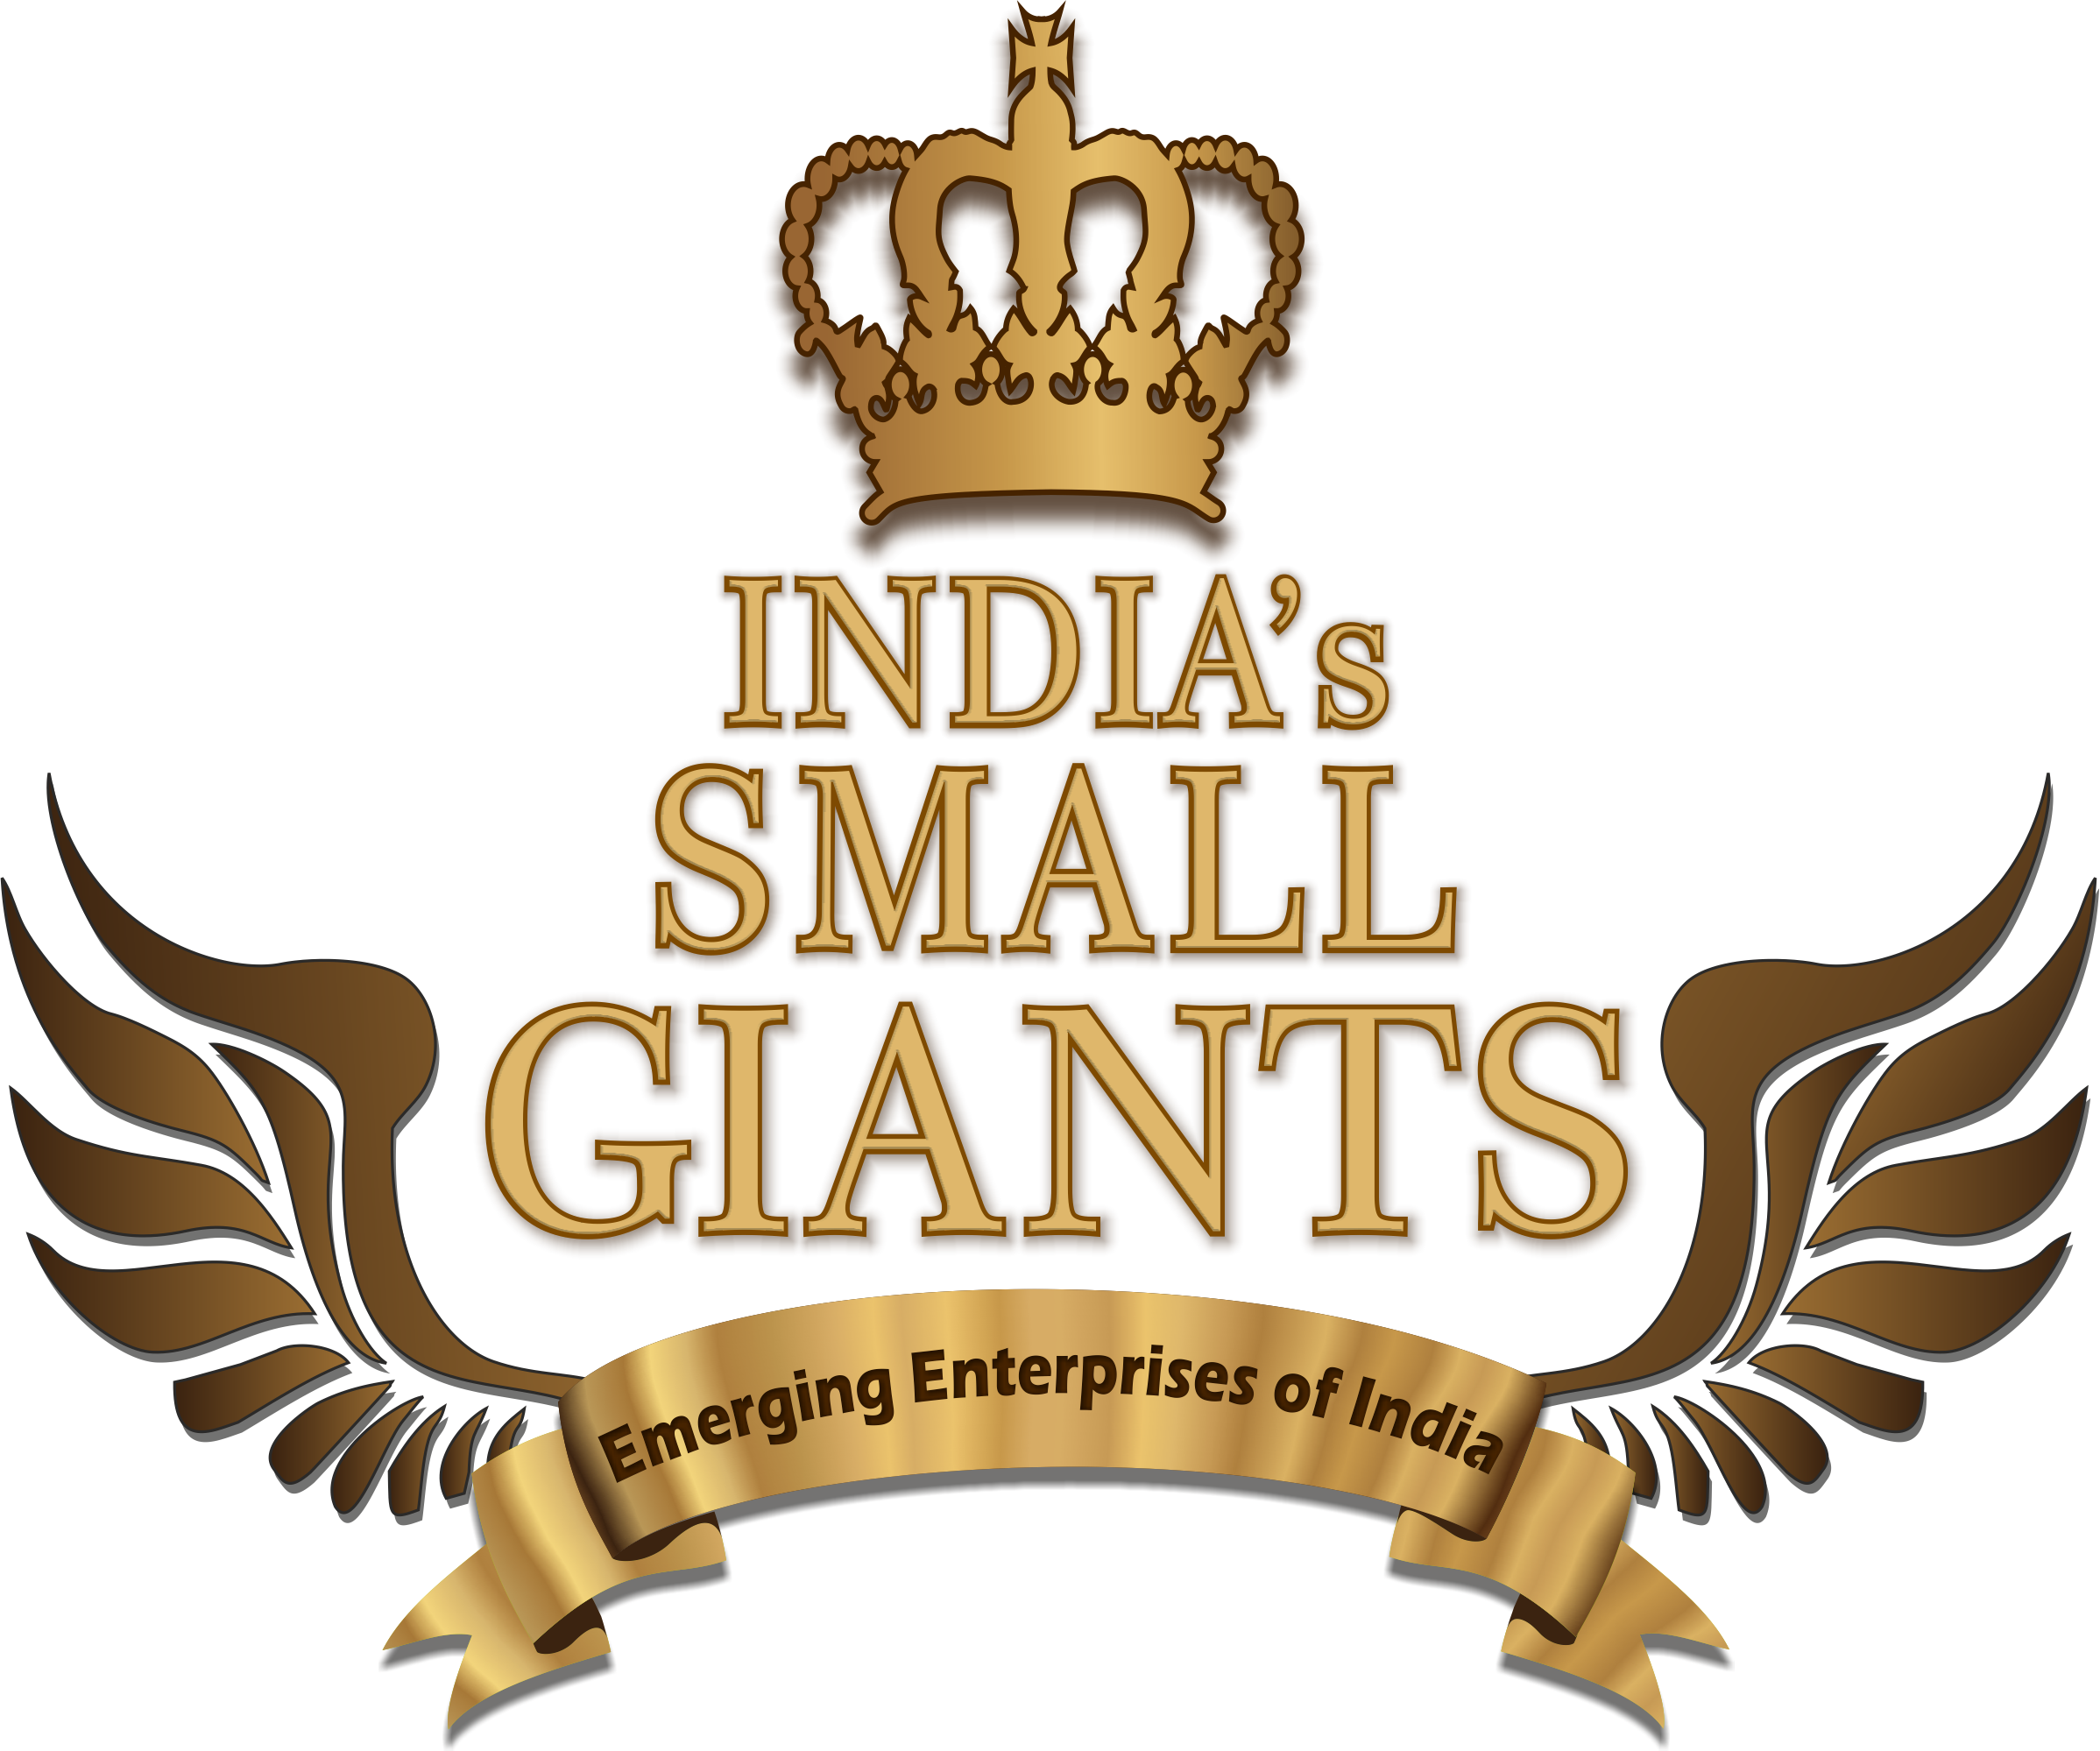 India's Small Giants